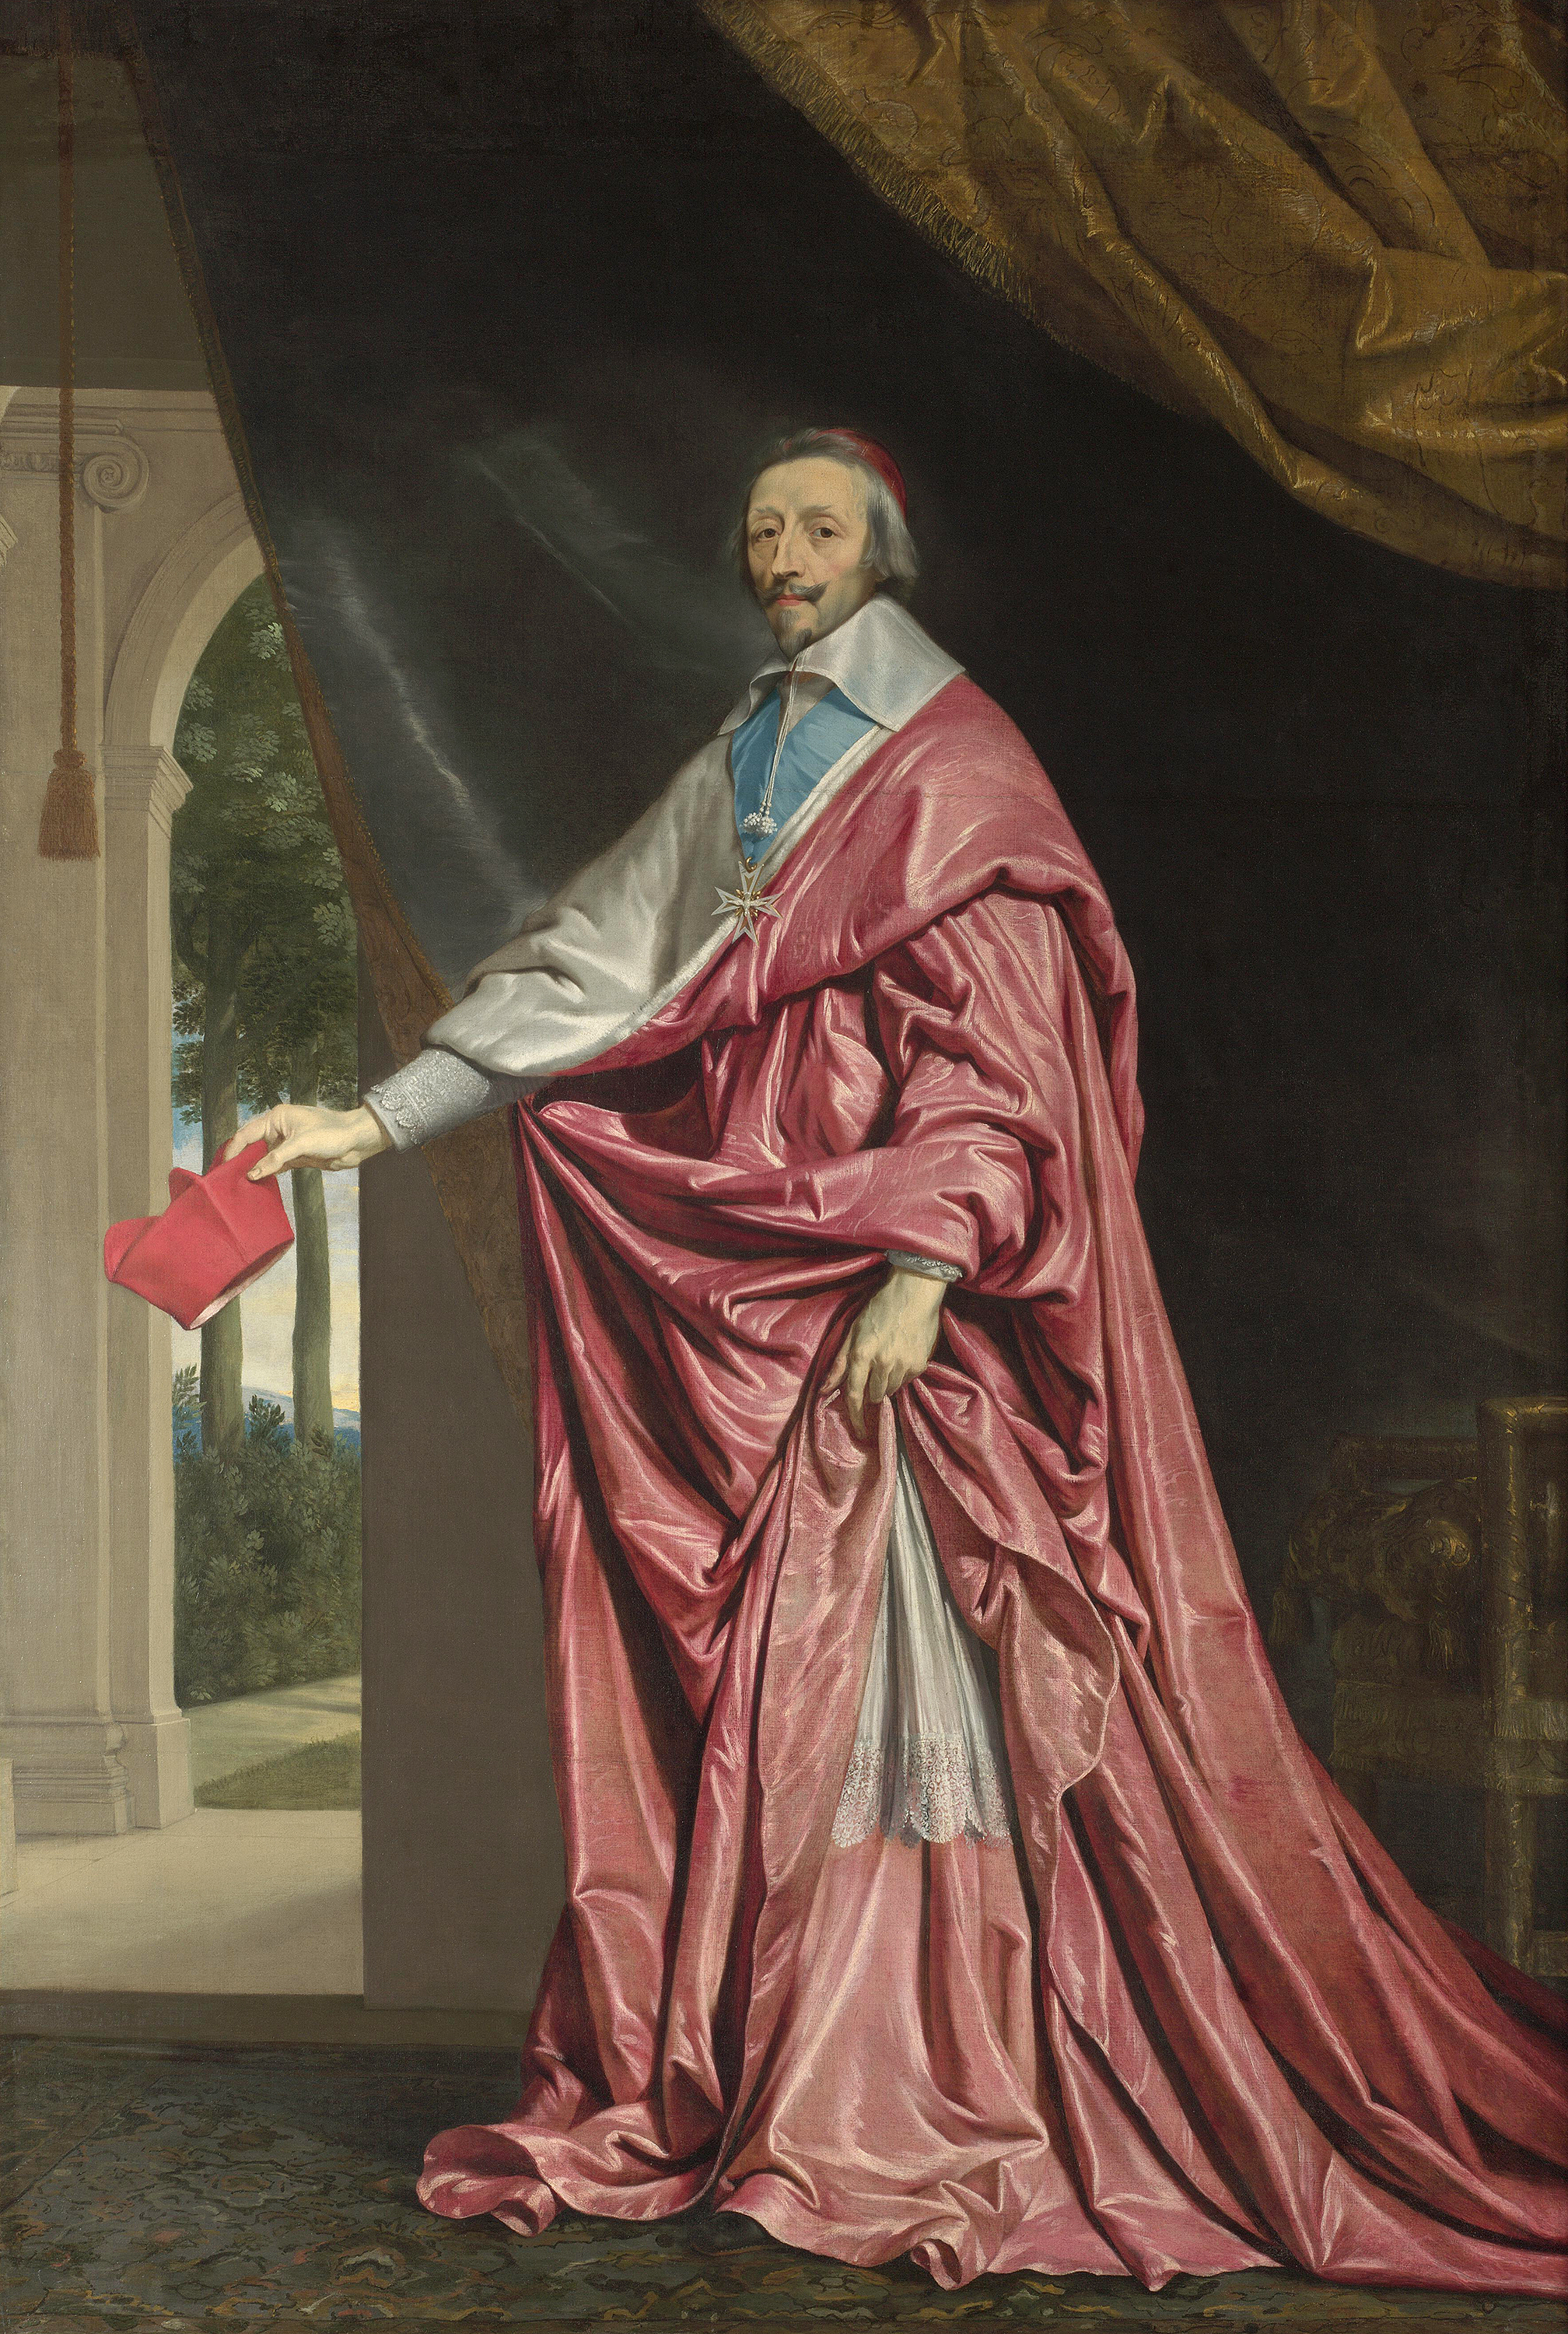 Portrait of Armand Jean du Plessis (1585-1642), 1st Duke of Richelieu (1629), Chief Minister to the French Monarch (1624-1642), Cardinal (1622), 1637 | Portraits of Kings